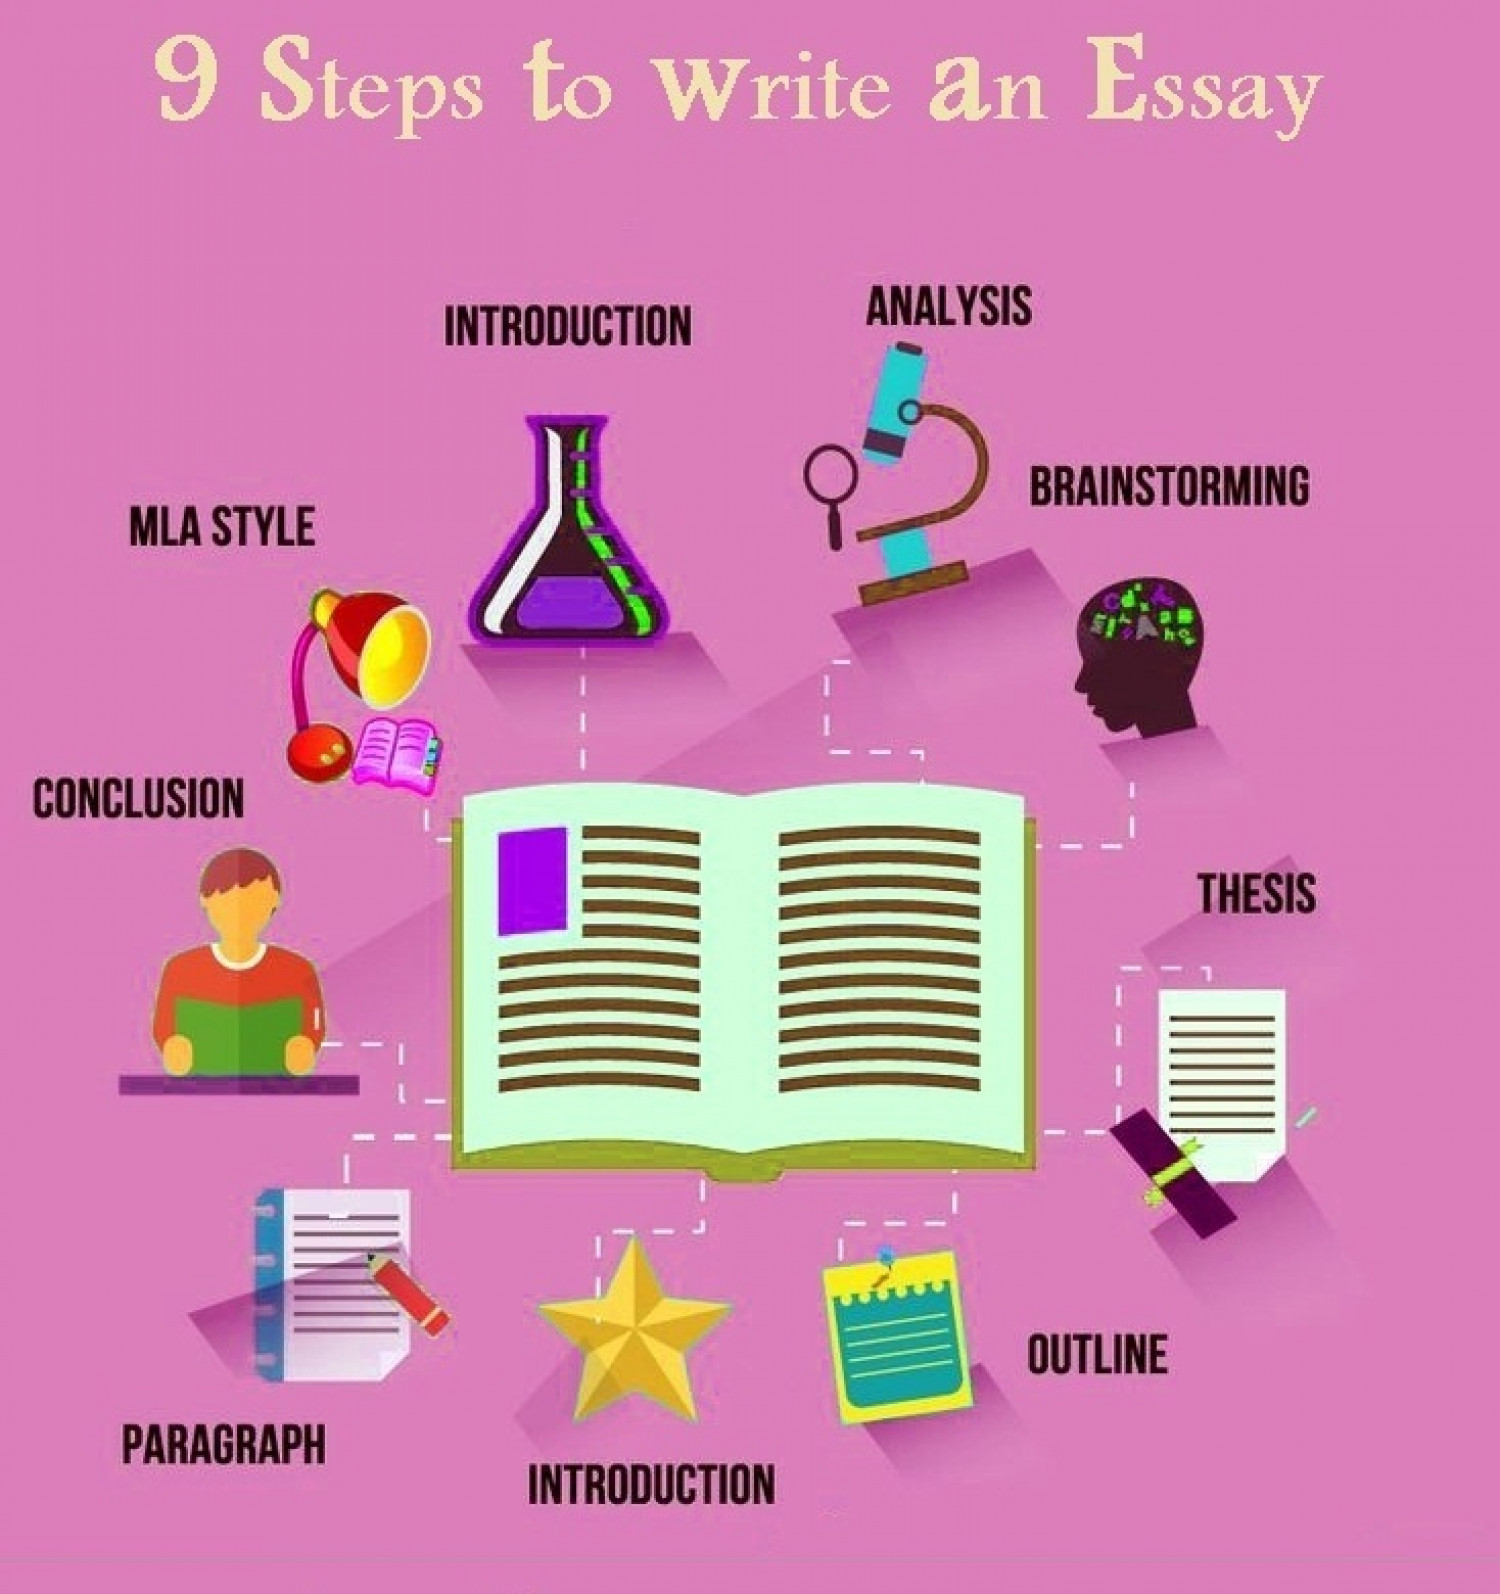 steps to write an essay ly 9 steps to write an essay infographic